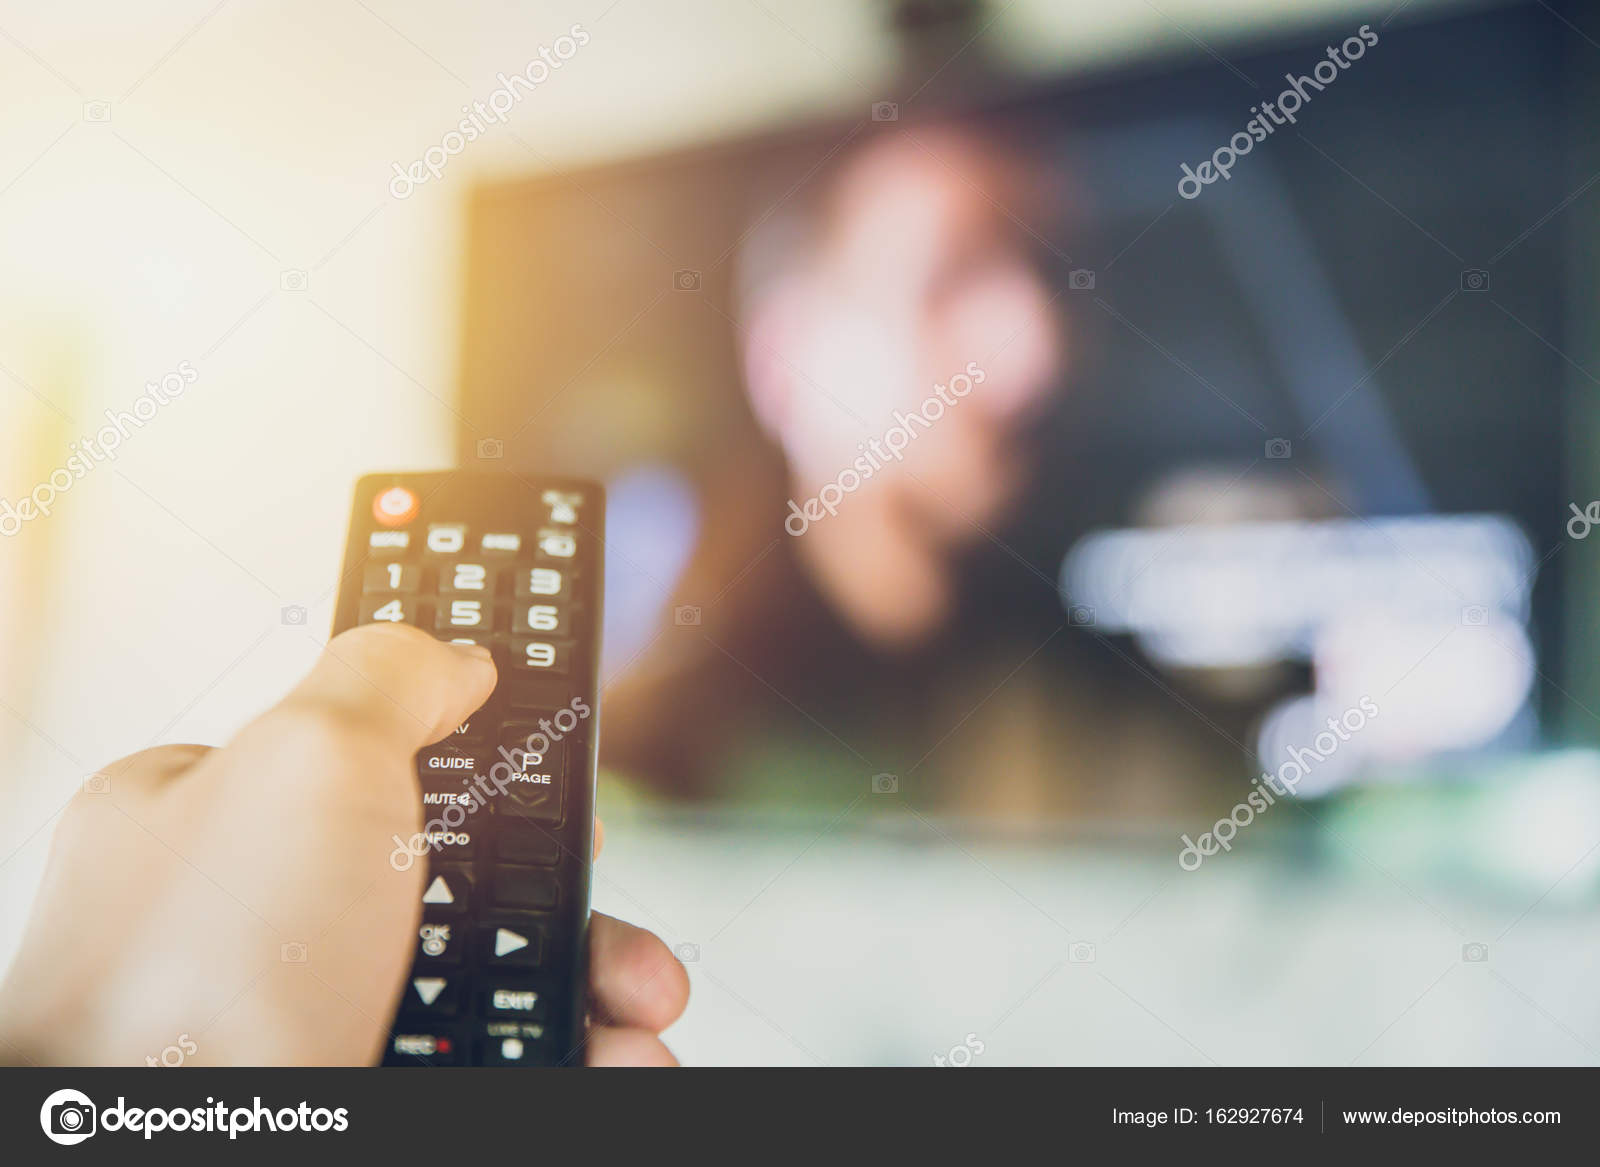 Hand hold Smart TV remote control with a television blur